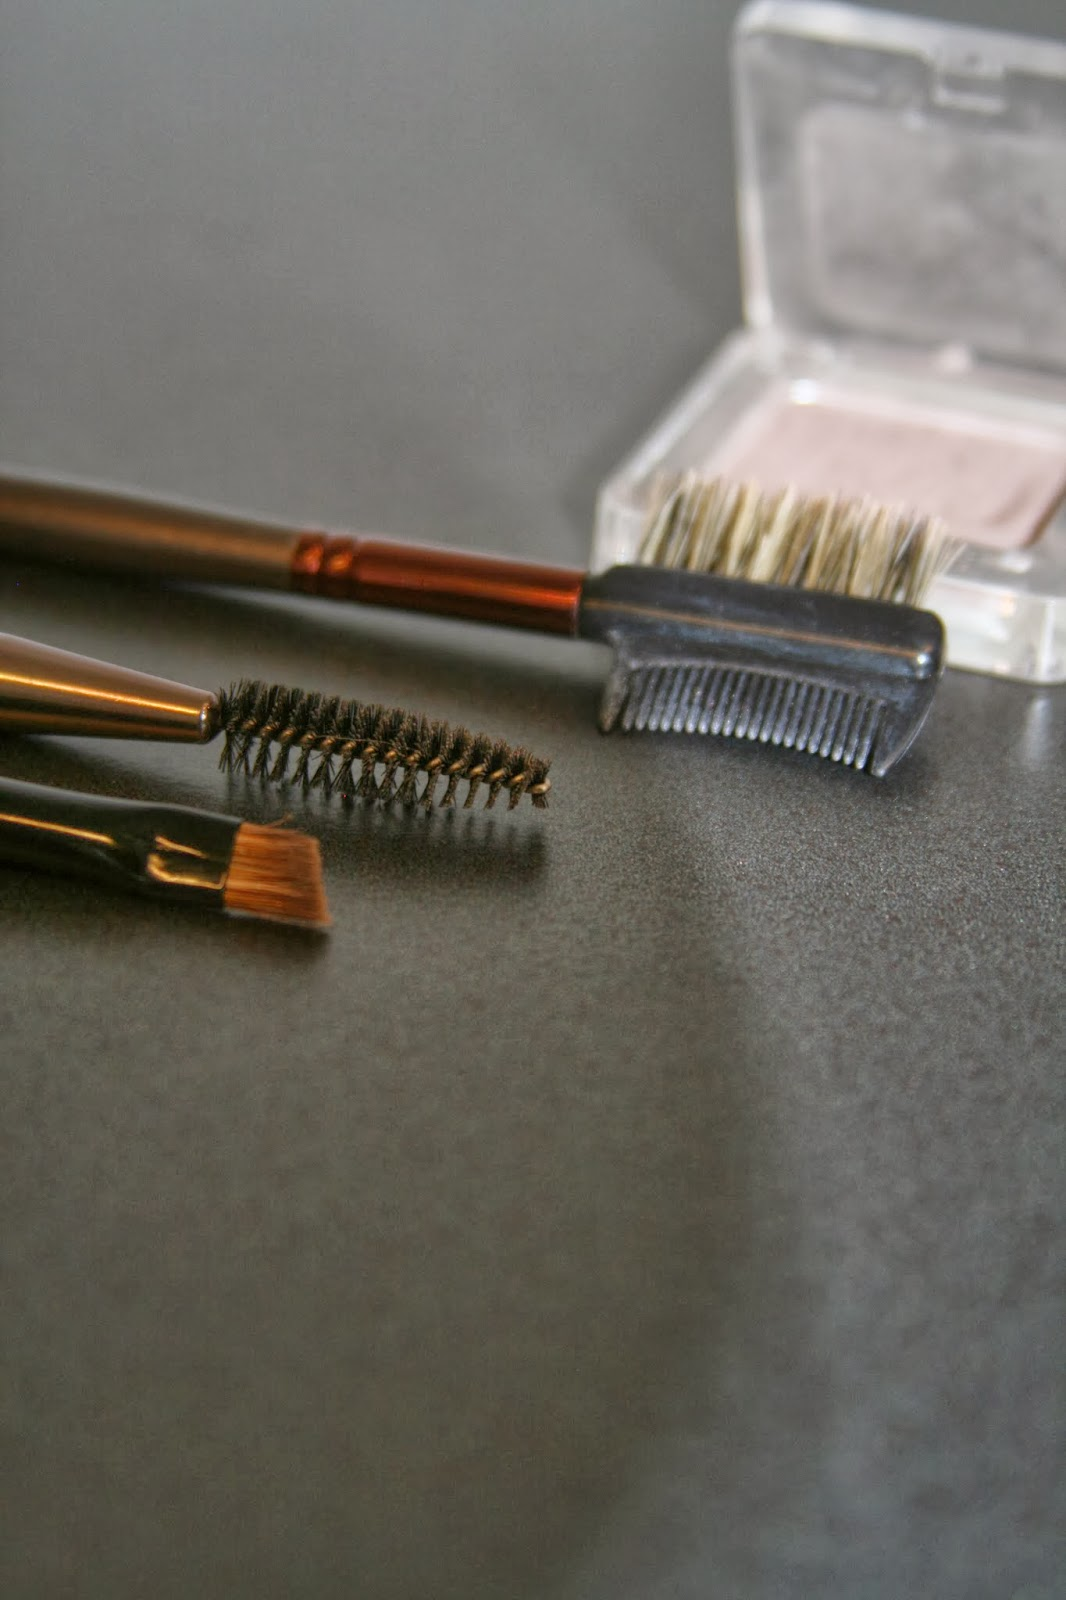 purplegold how to use makeup brushes and what are they for. Black Bedroom Furniture Sets. Home Design Ideas